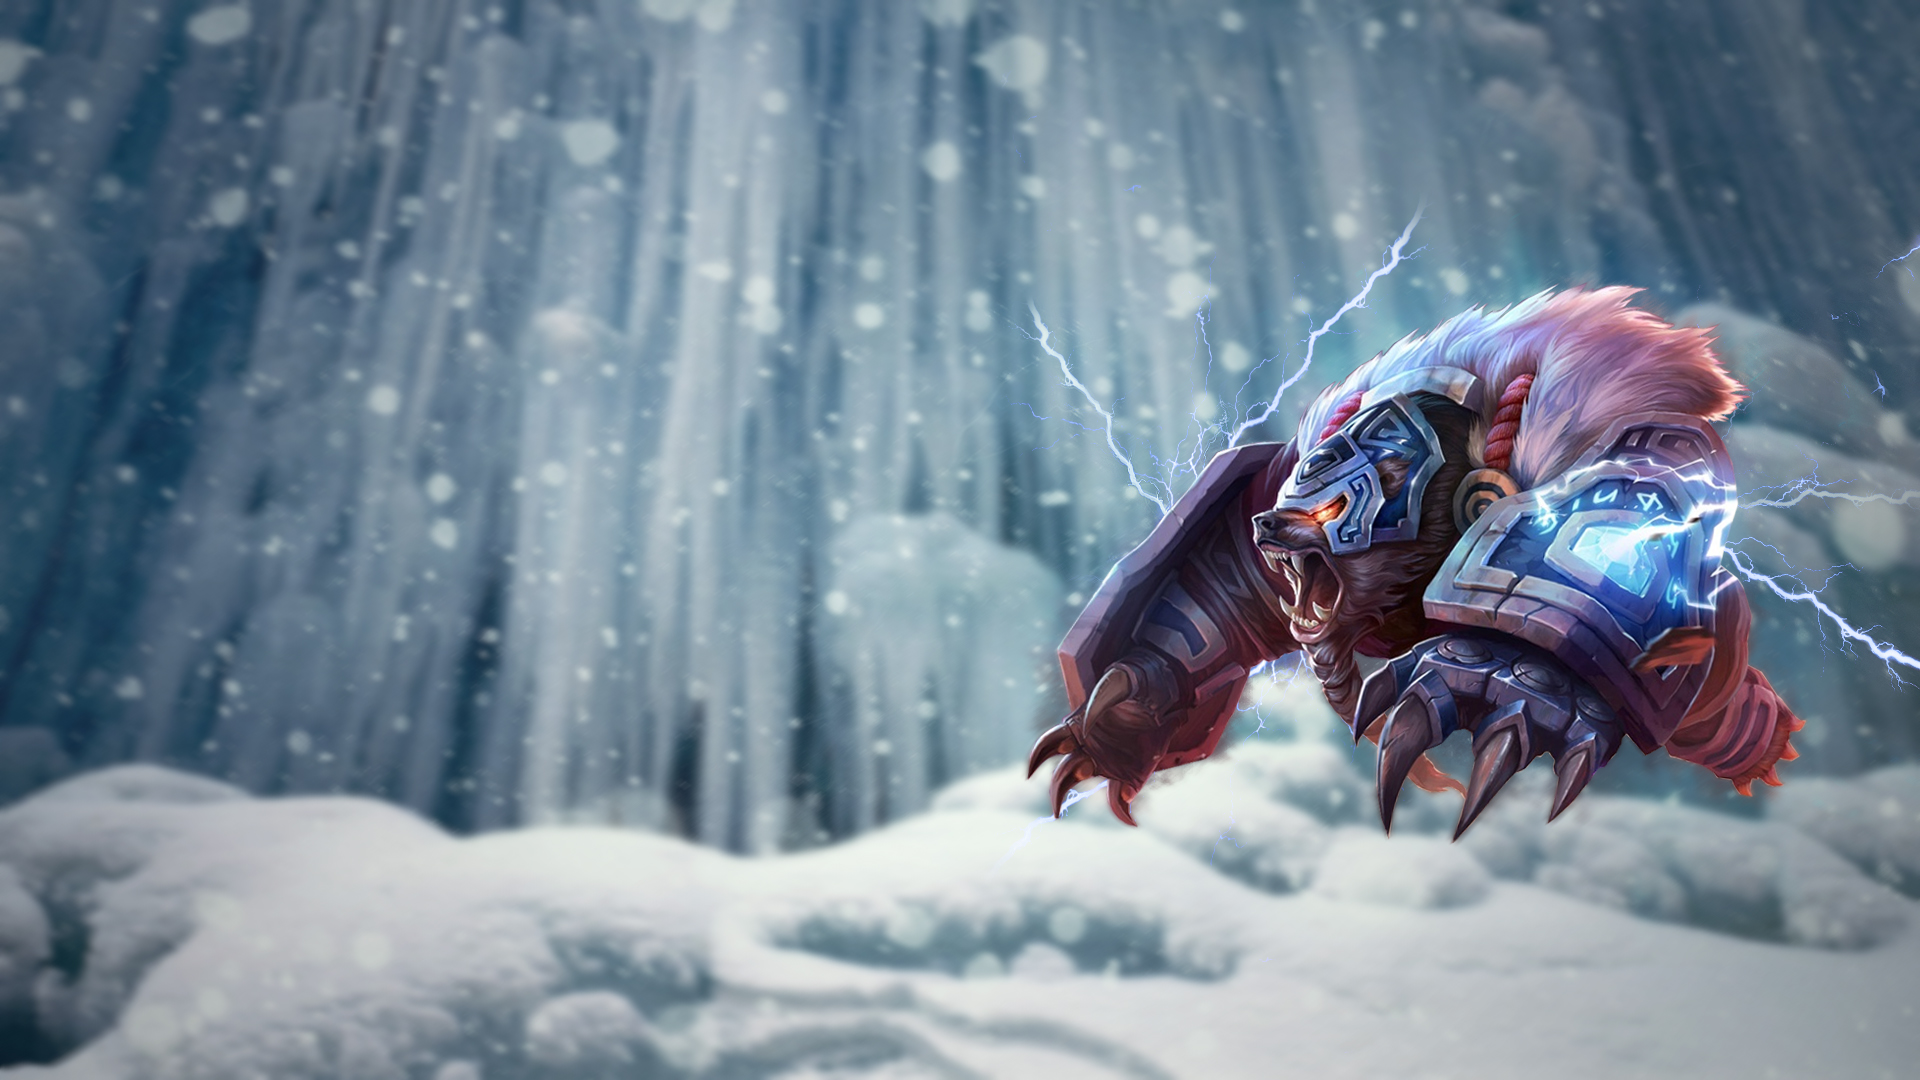 league of legends volibear wallpaper 1080p by selack fan art wallpaper ...